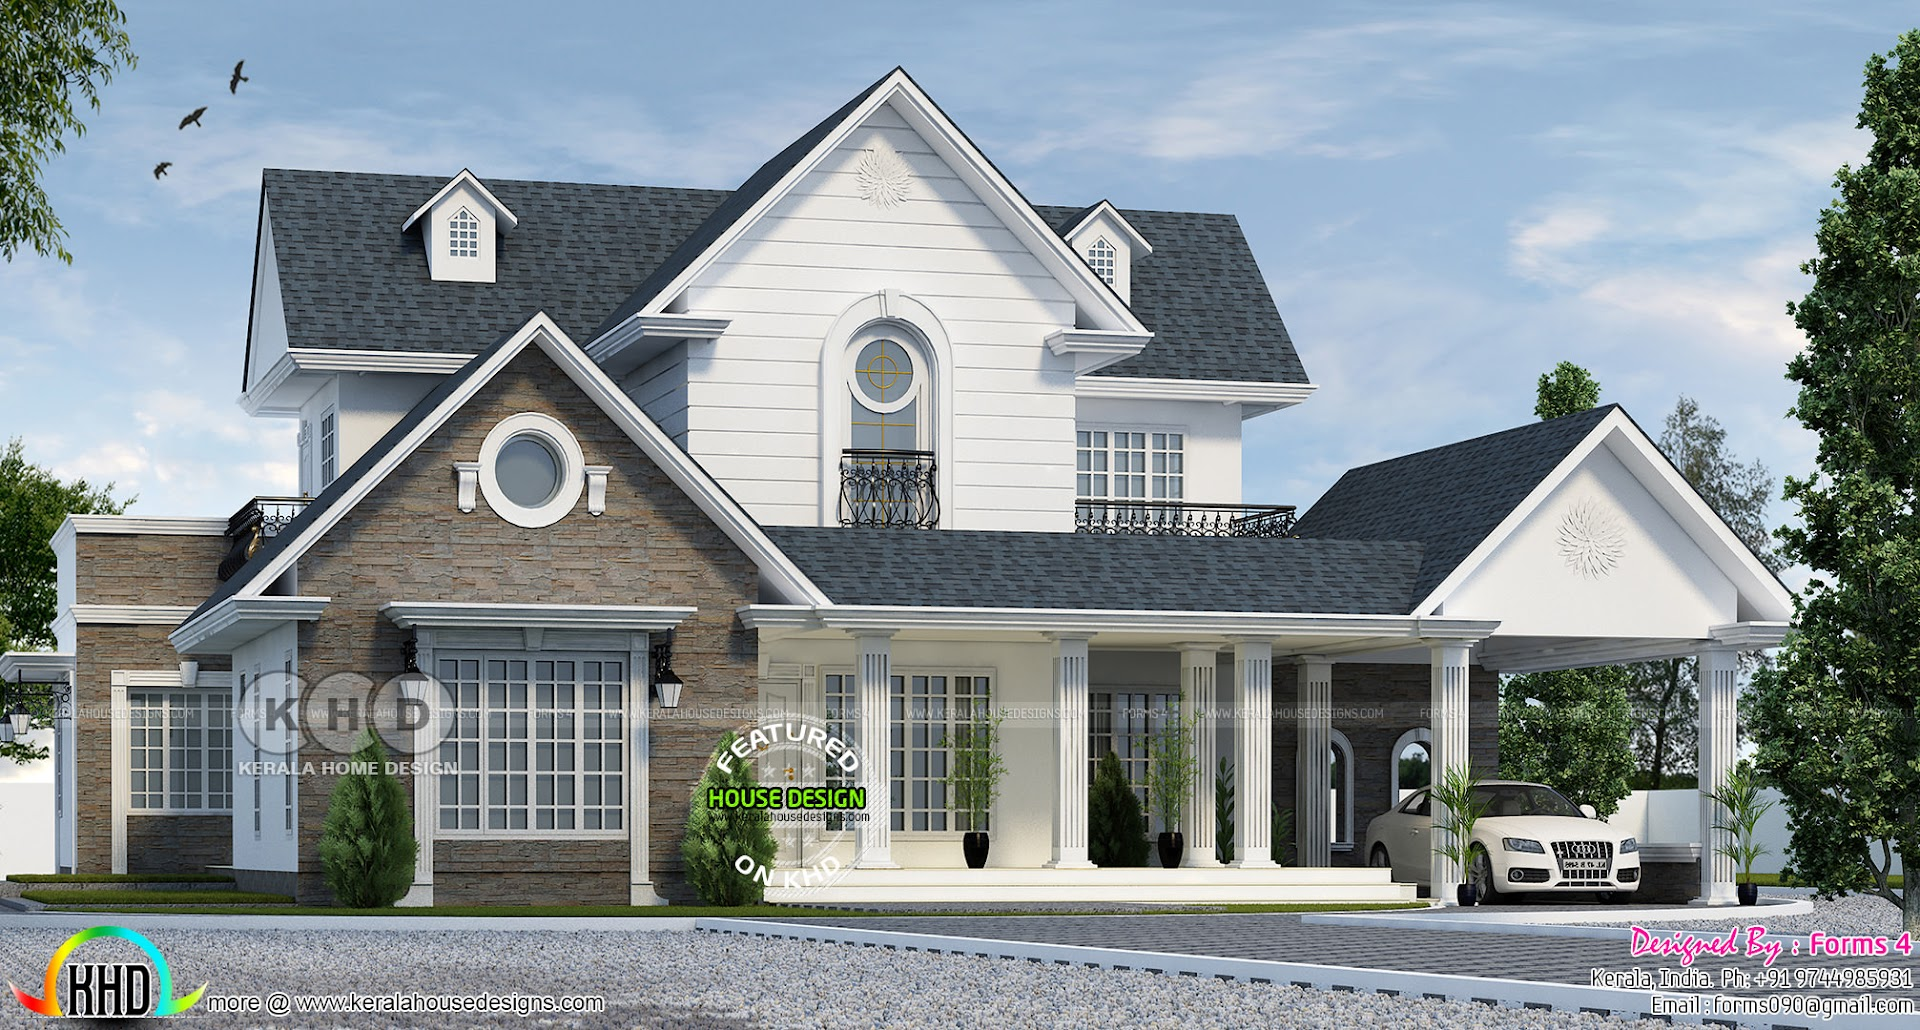 Amazing Colonial Style Home Architecturally Treated Kerala Home Design And Floor Plans 8000 Houses